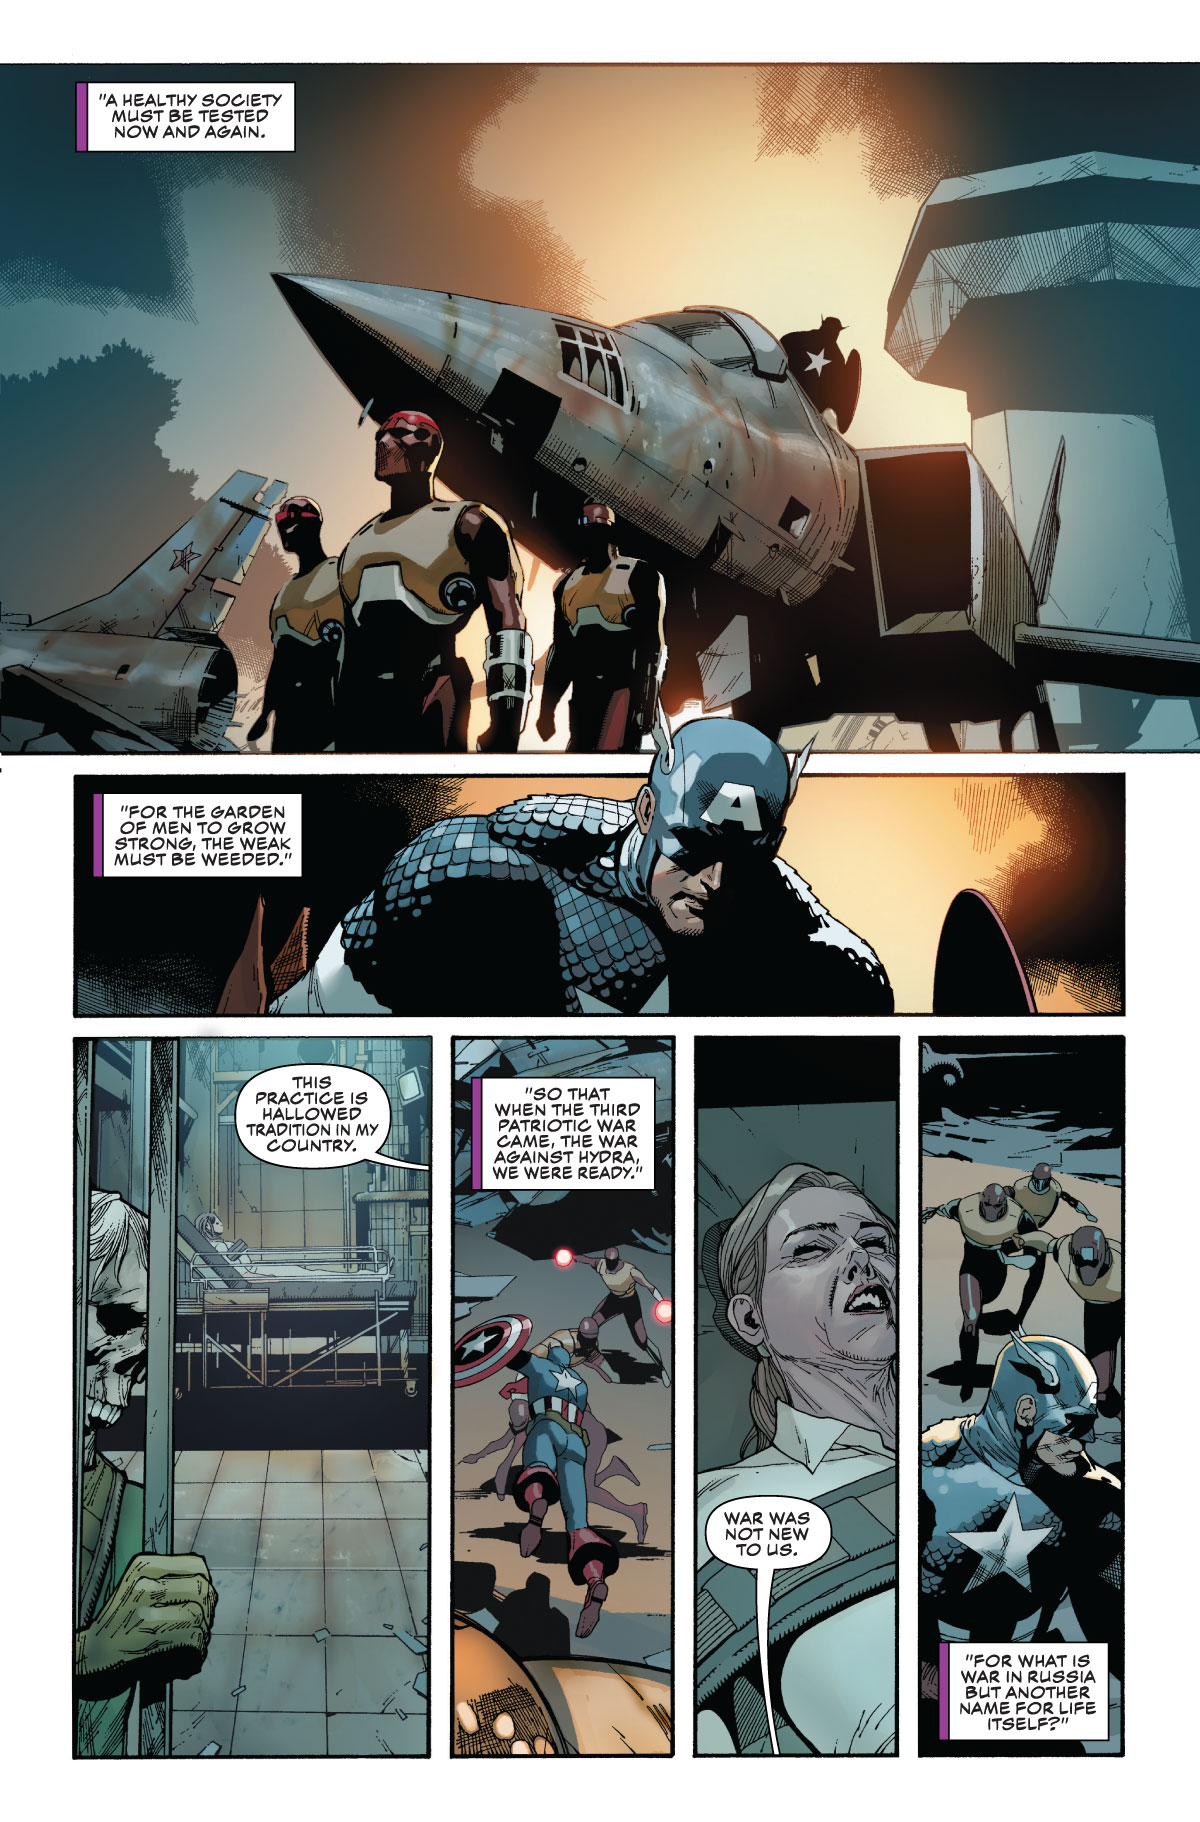 EXCLUSIVE: Sharon Carter Is In Major Trouble in Captain America #4